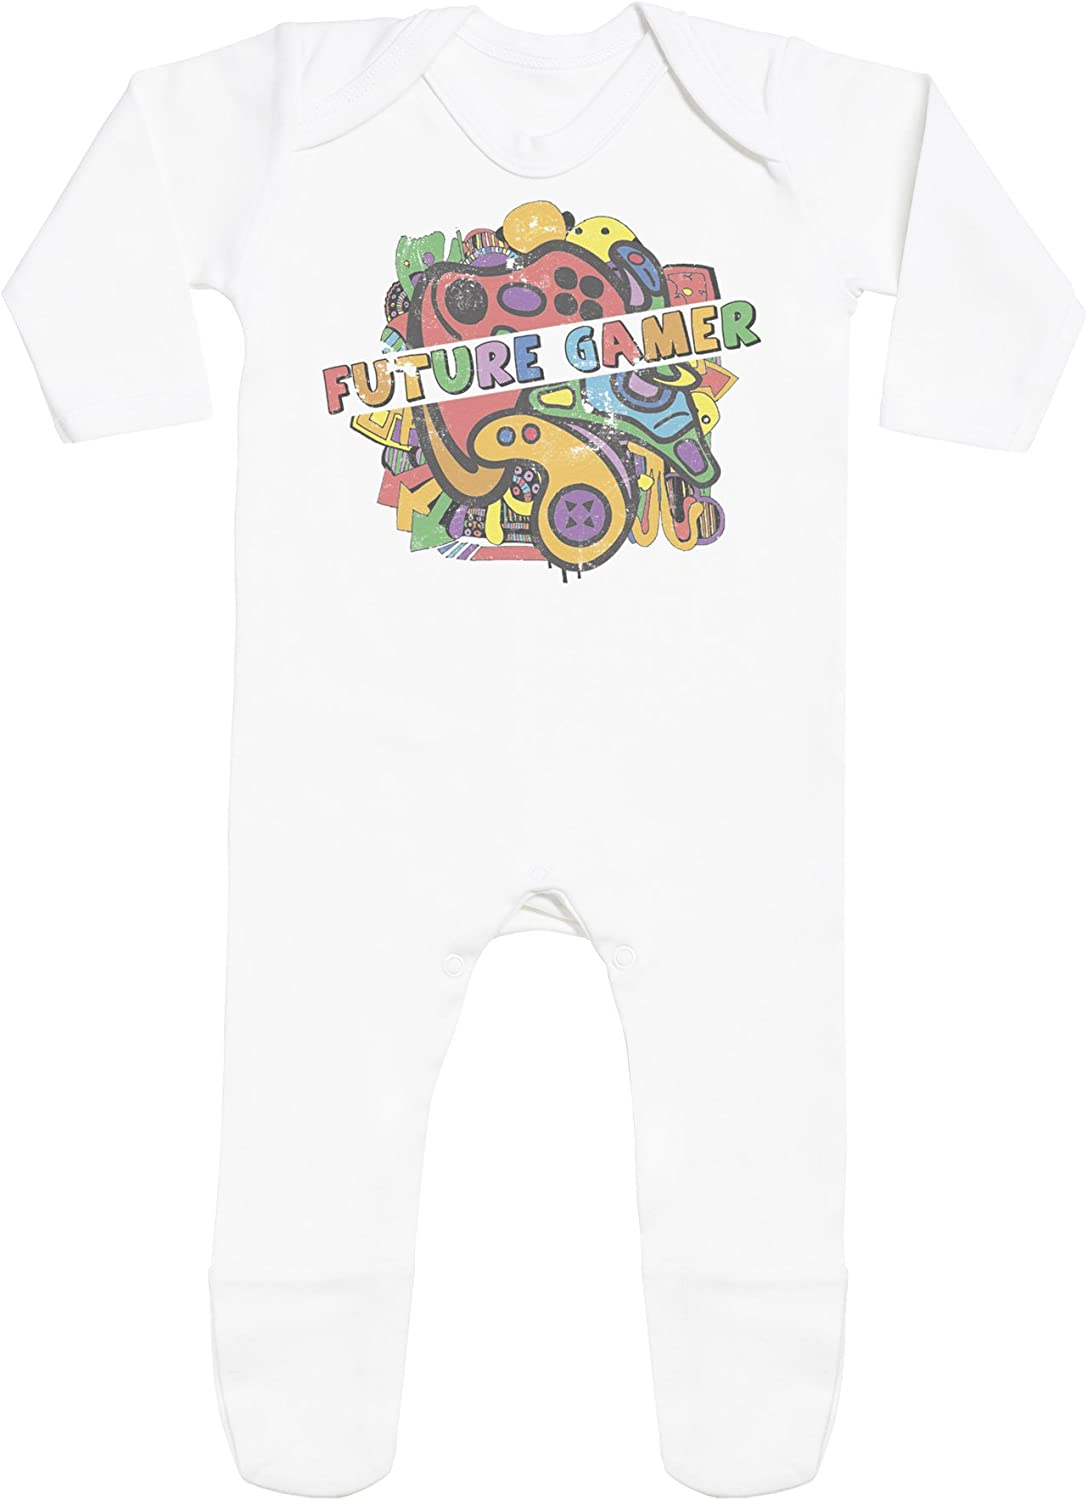 Baby Jumpsuit Baby Romper SR Baby Sleepsuit Future Gamer Baby Rompersuit with Feet Baby Rompersuit 0-3 Months White